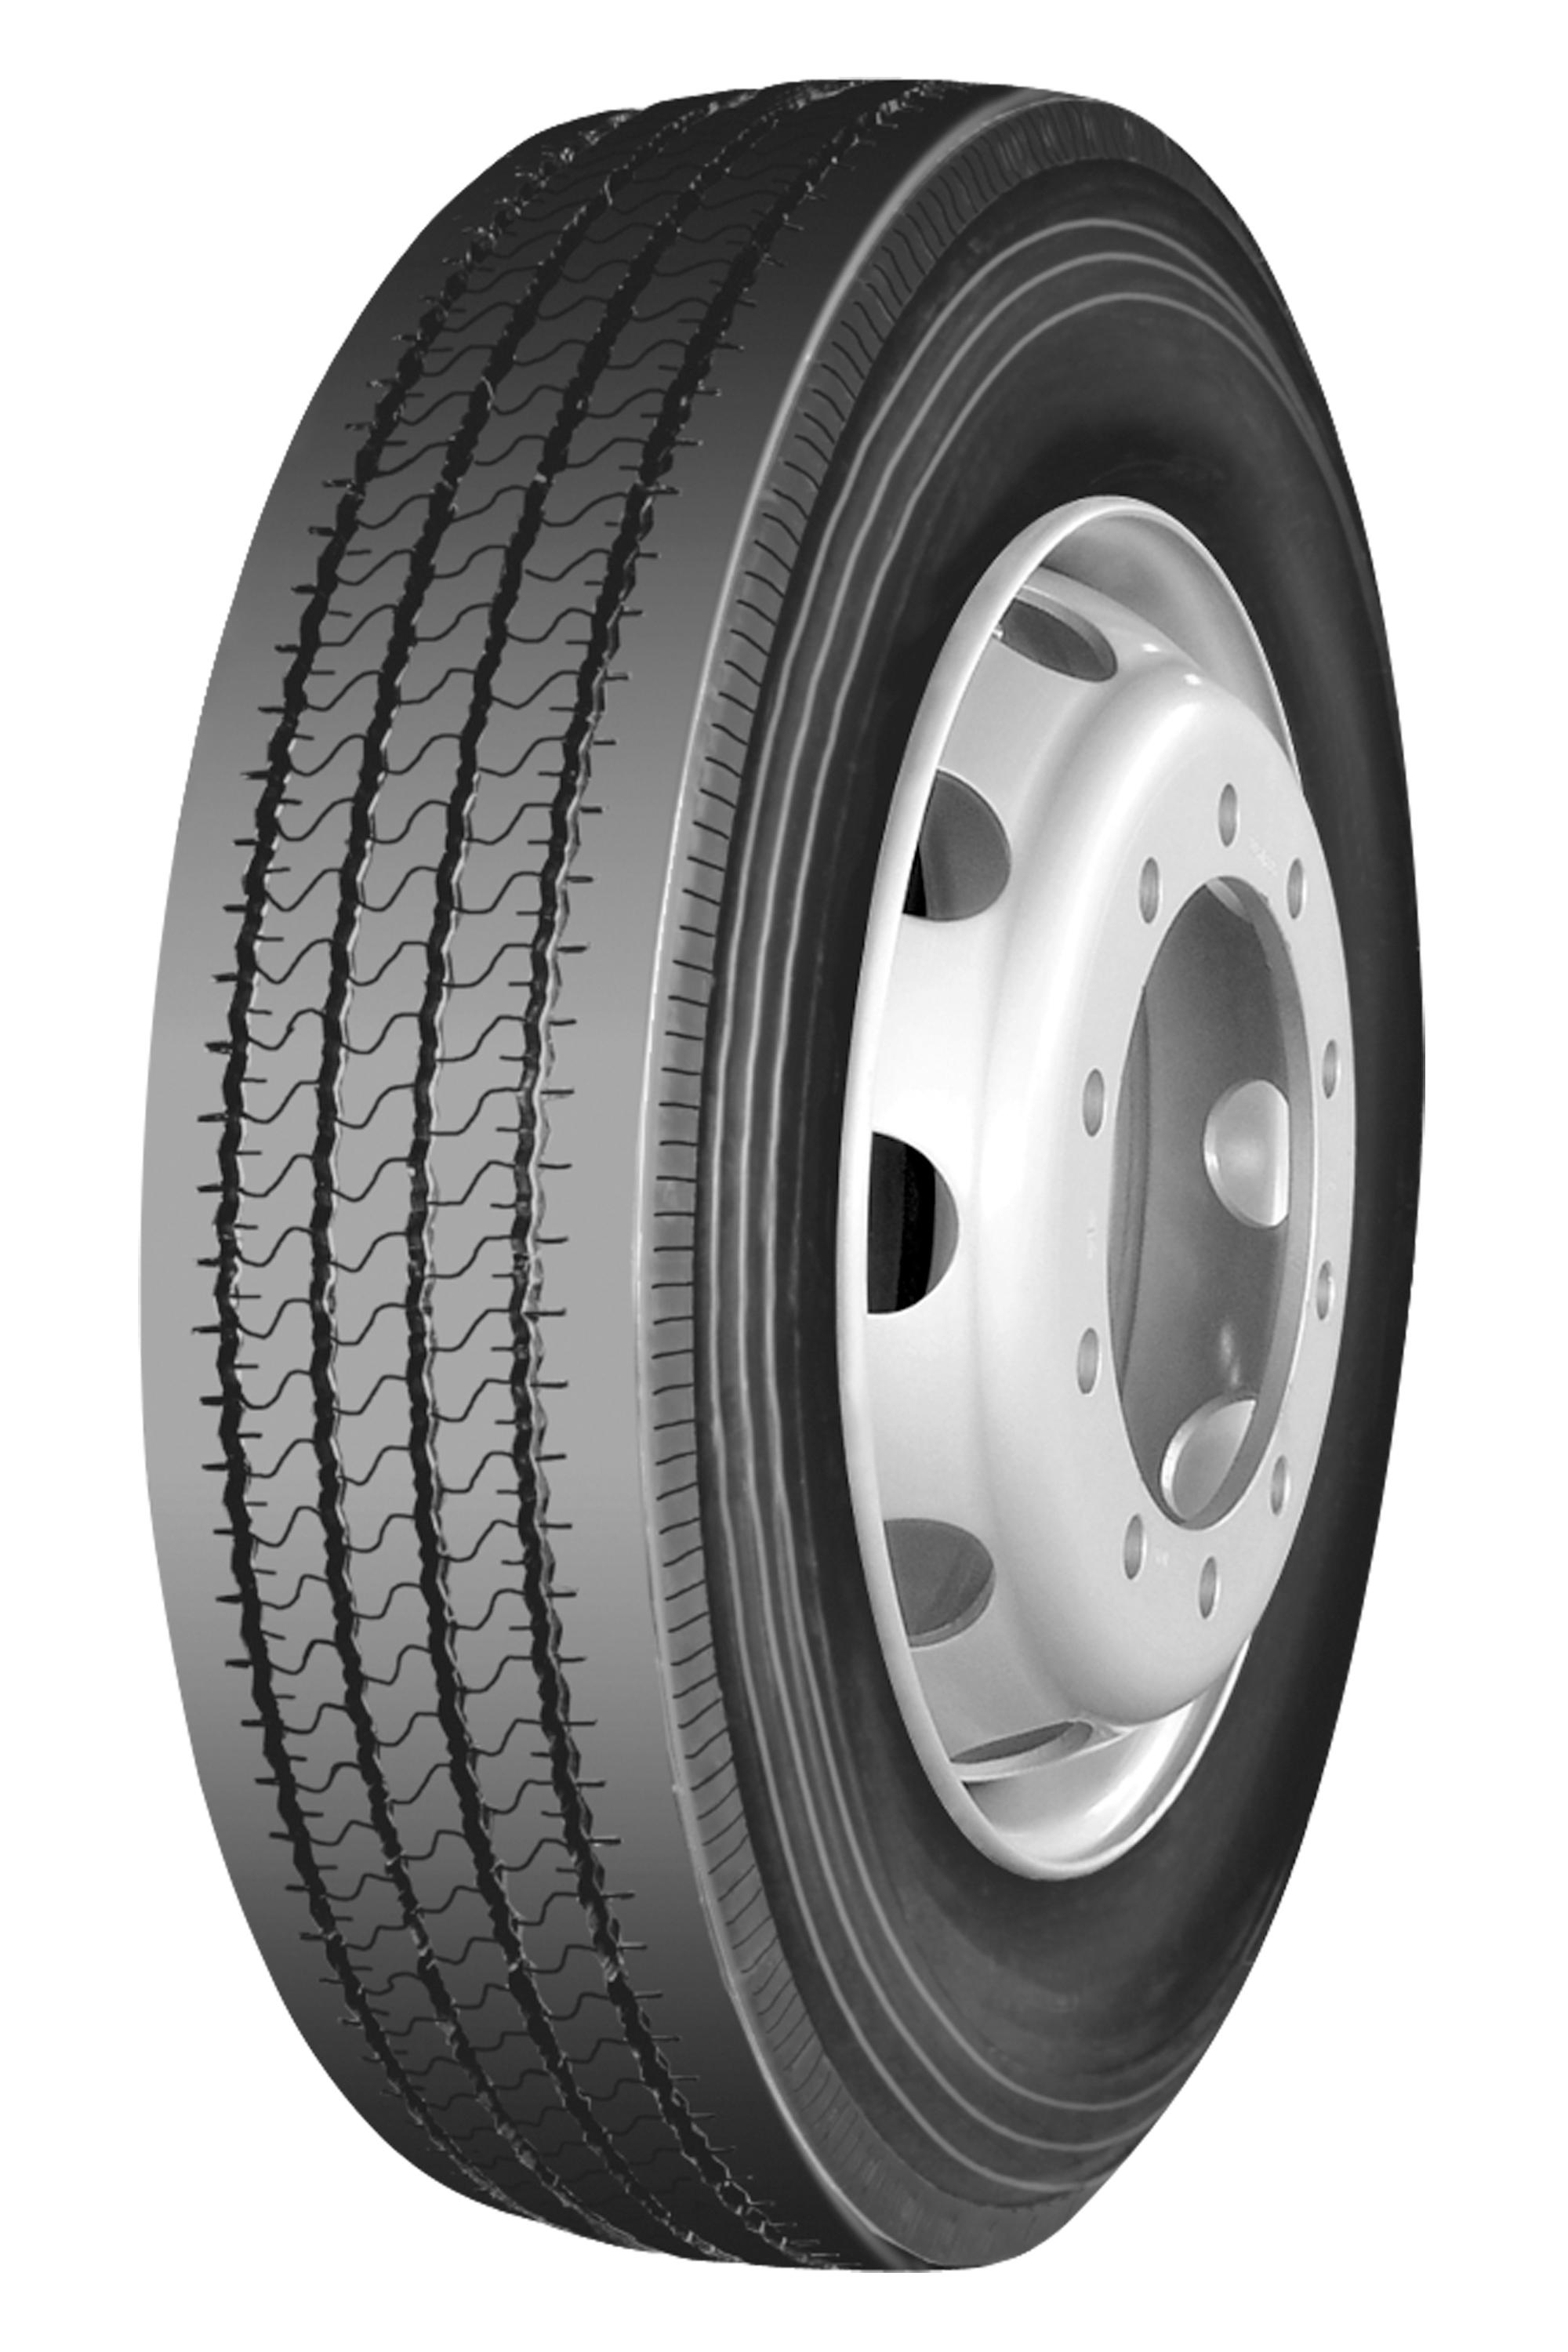 LM120 ALL STEEL RADIAL TRUCK AND BUS TYRES